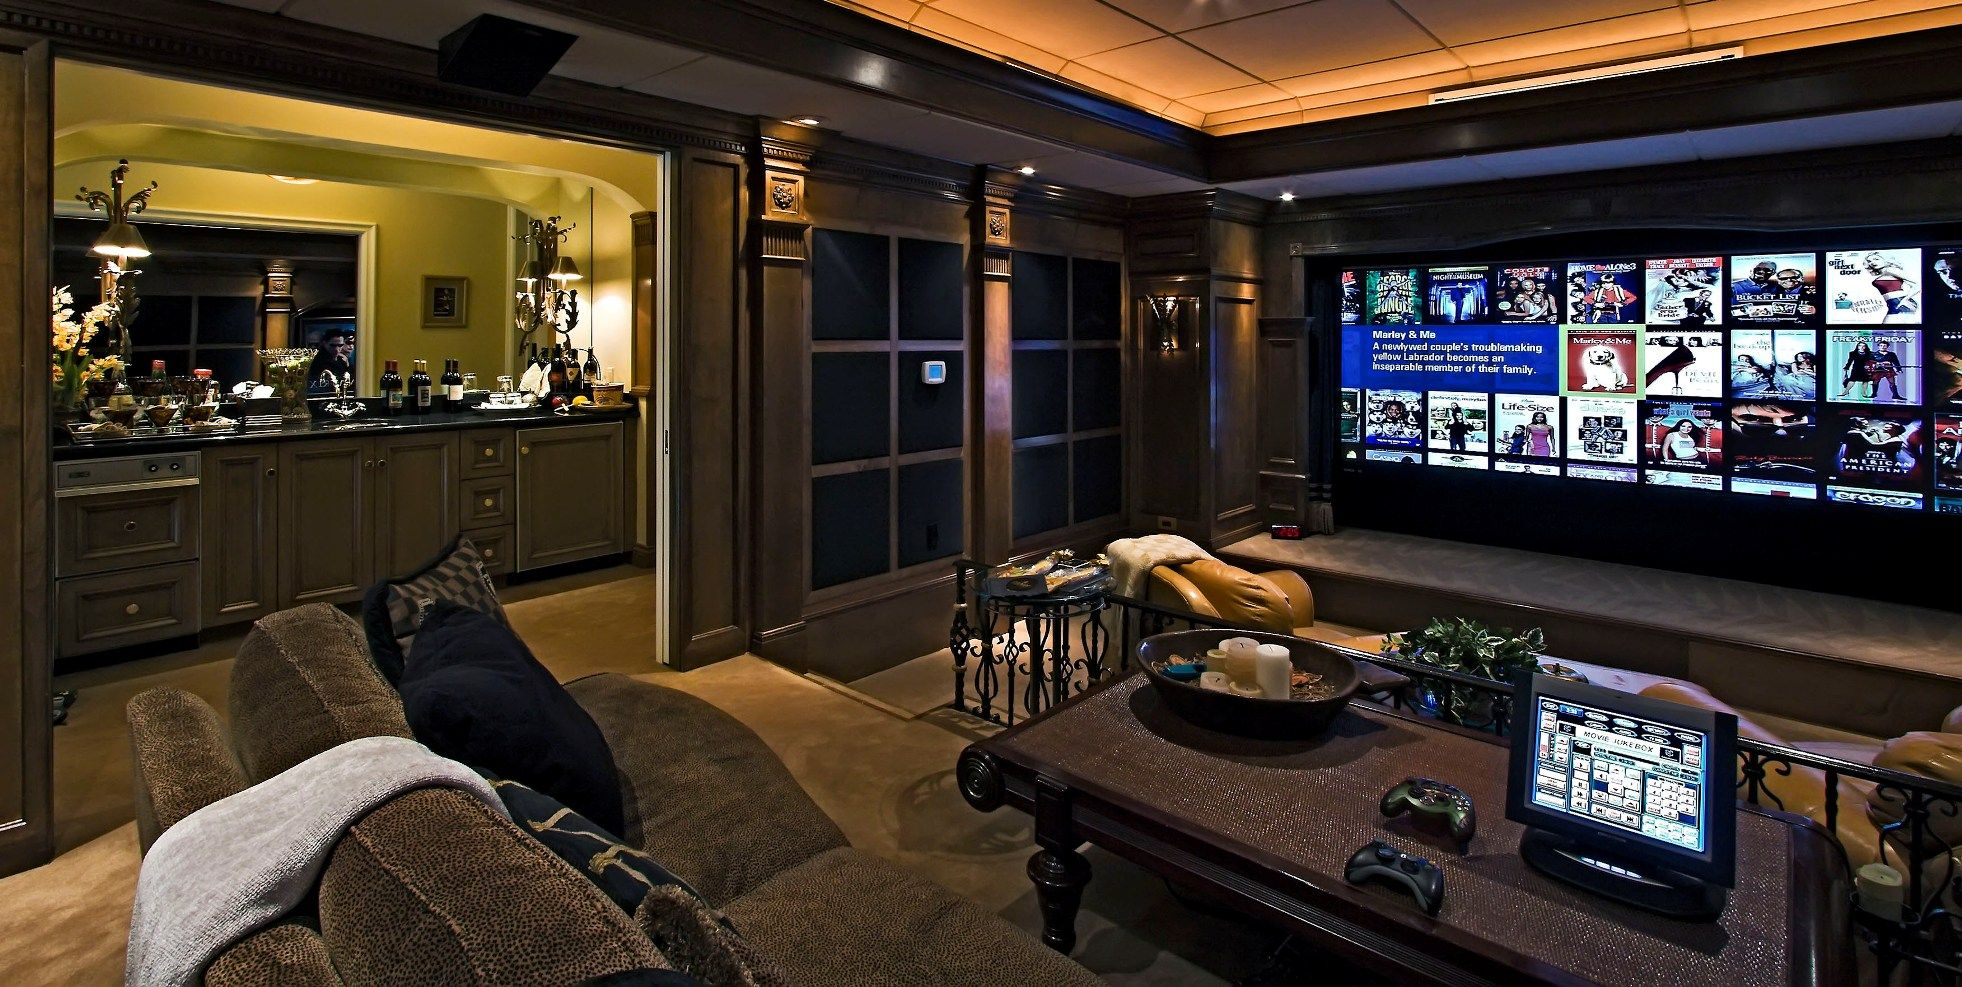 Home Theater Rooms Design Ideas 20 home cinema room ideas Fascinating Home Theater Interior Design Decorating Ideas With Brown Sofa Wooden Table Wooden Floor Glass Windows Kitcen Cabinet Special Lighting Big Screen